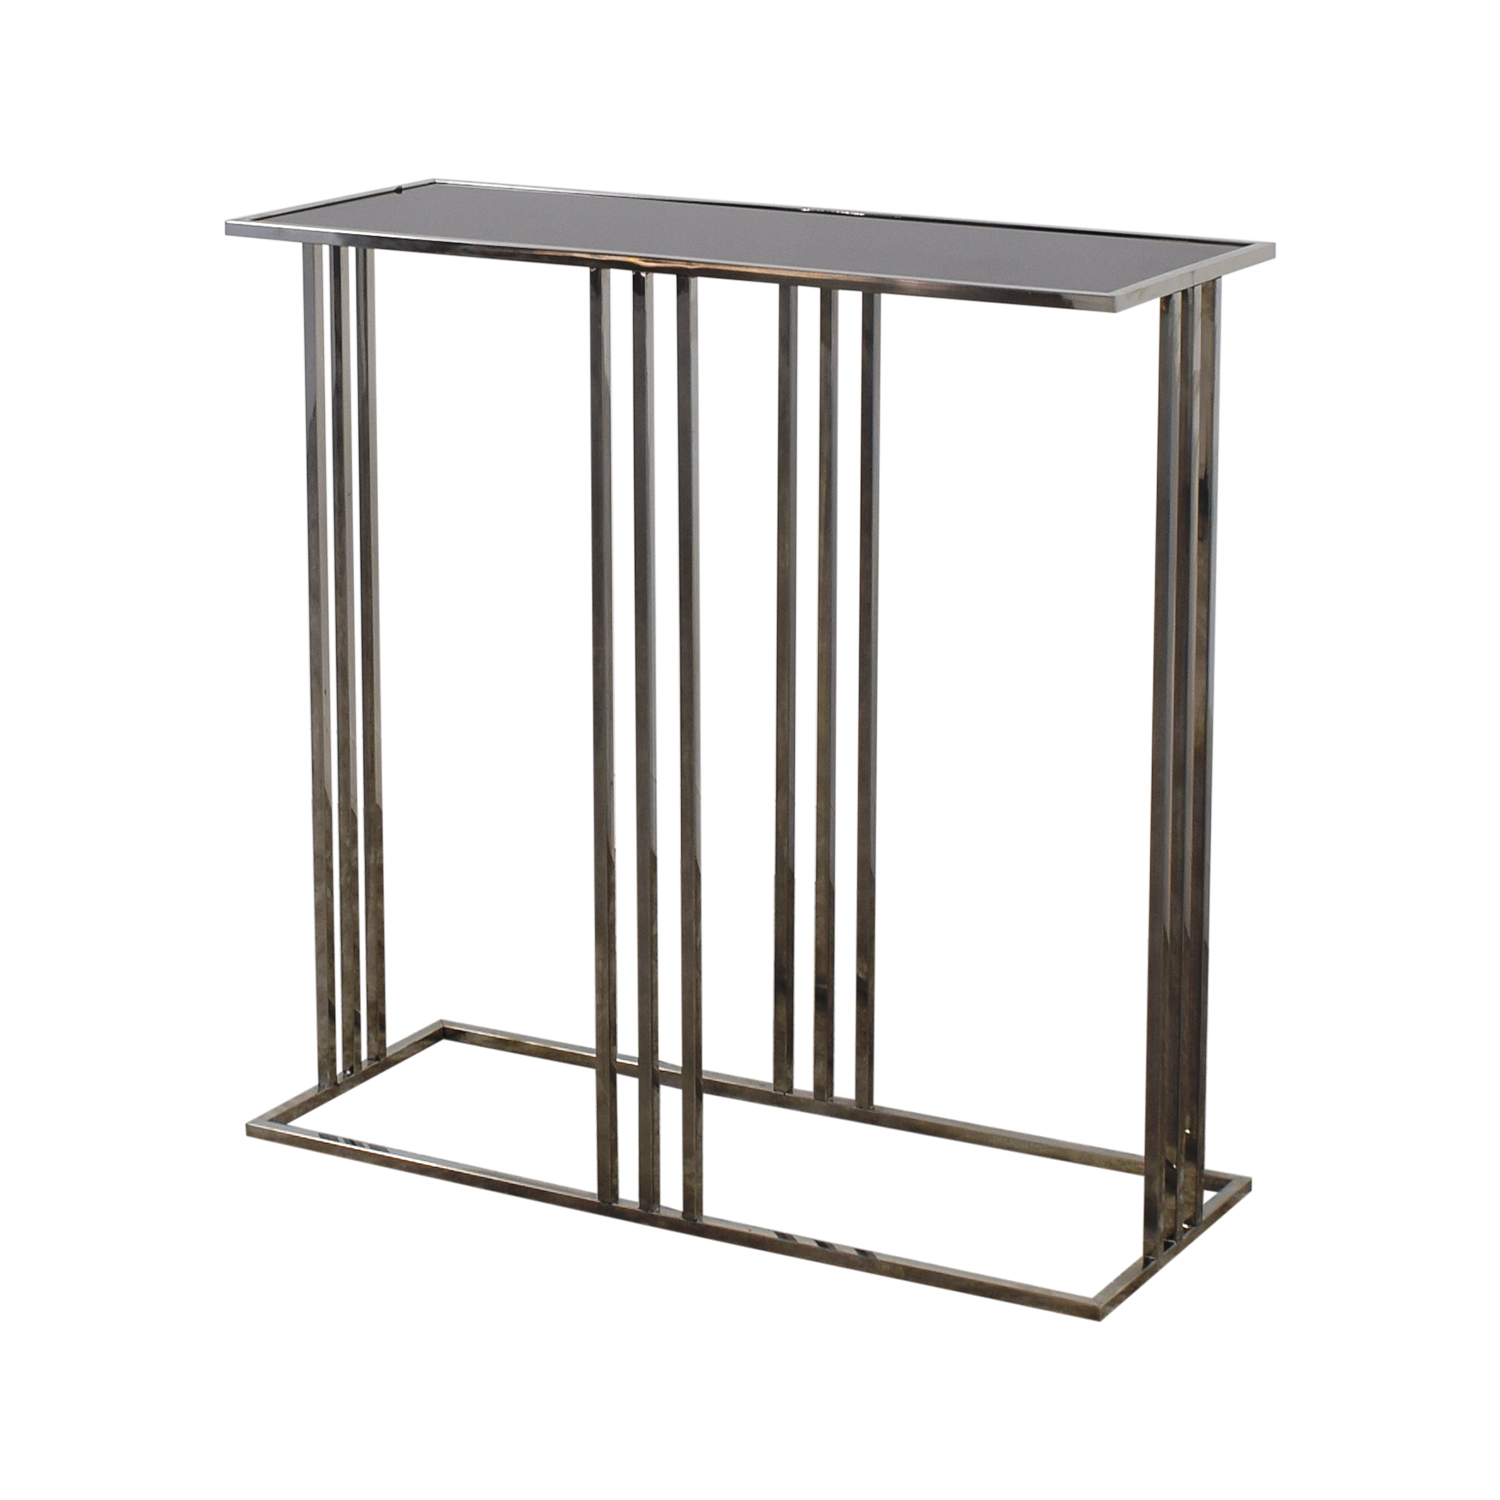 83 Off Homegoods Homegoods Black And Silver Entryway Table Tables